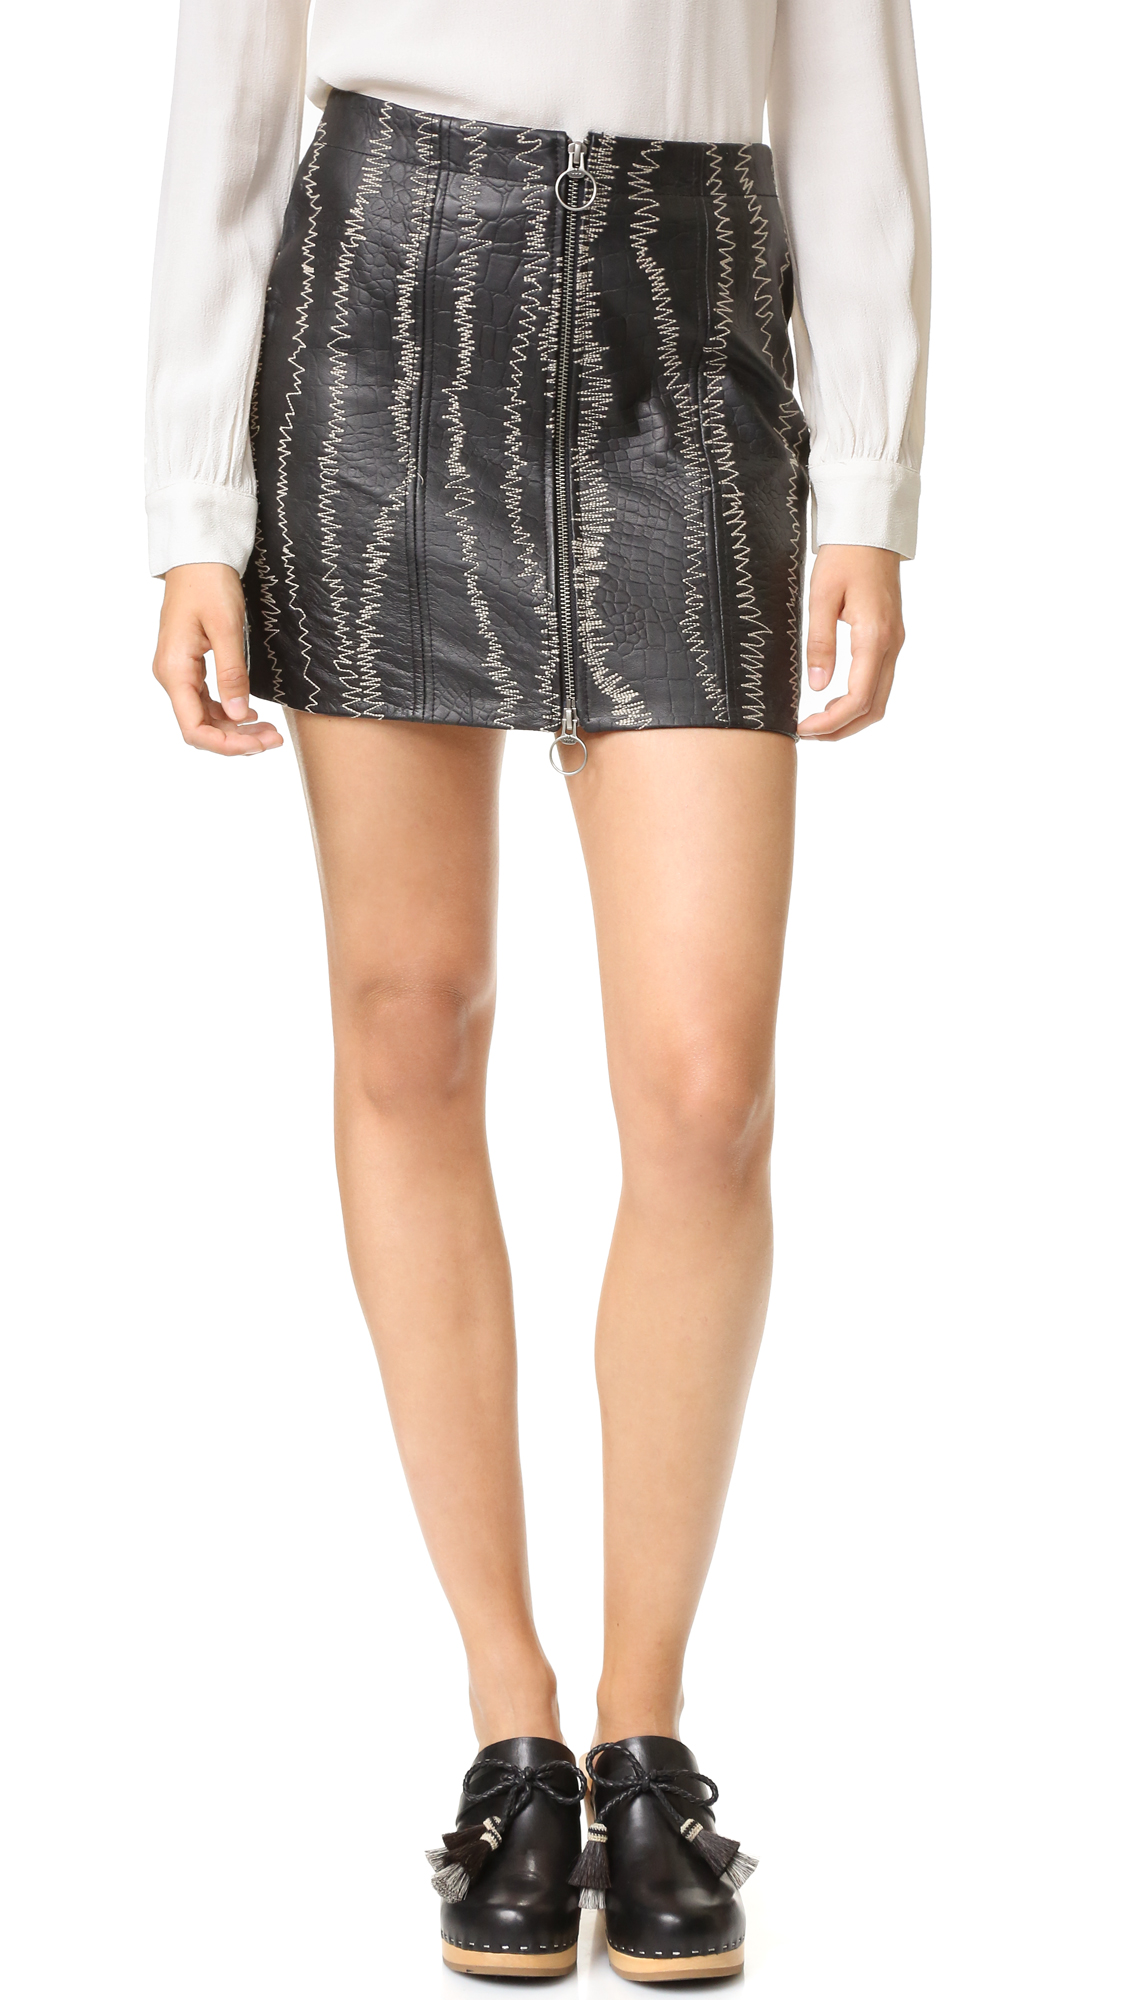 A Free People miniskirt in bold, croc embossed leather. Contrast embroidery adds a unique finish. Exposed front zip. Lined. Fabric: Leather. Shell: 100% lambskin. Lining: 100% rayon. Leather clean. Imported, India. Measurements Length: 14.5in / 37cm Measurements from size 4.